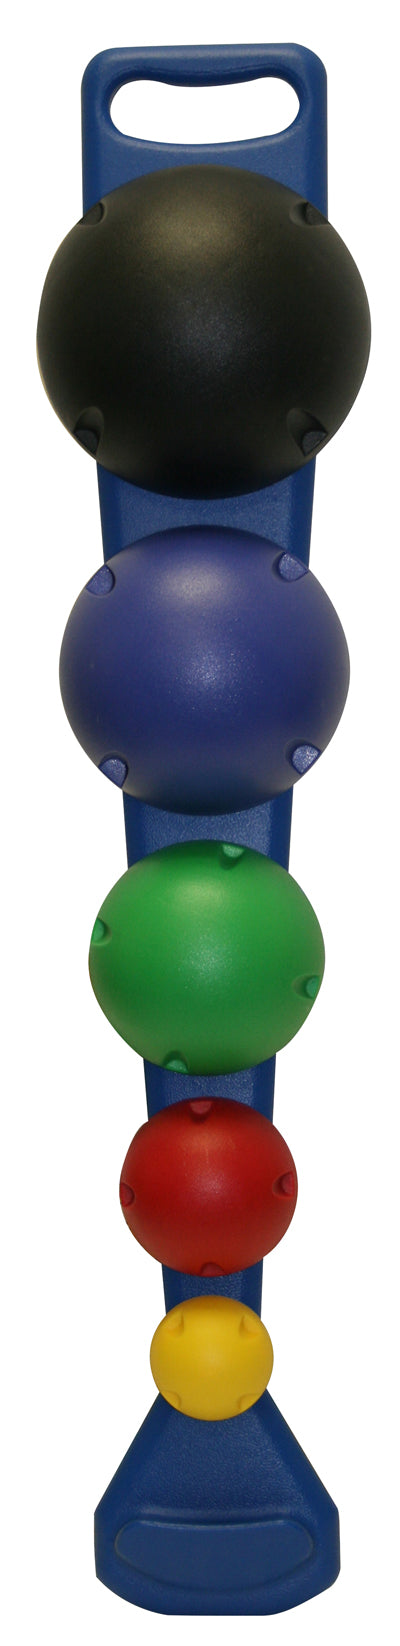 5-Ball Set with Wall Rack (1 each: yellow, red, green, blue, black)